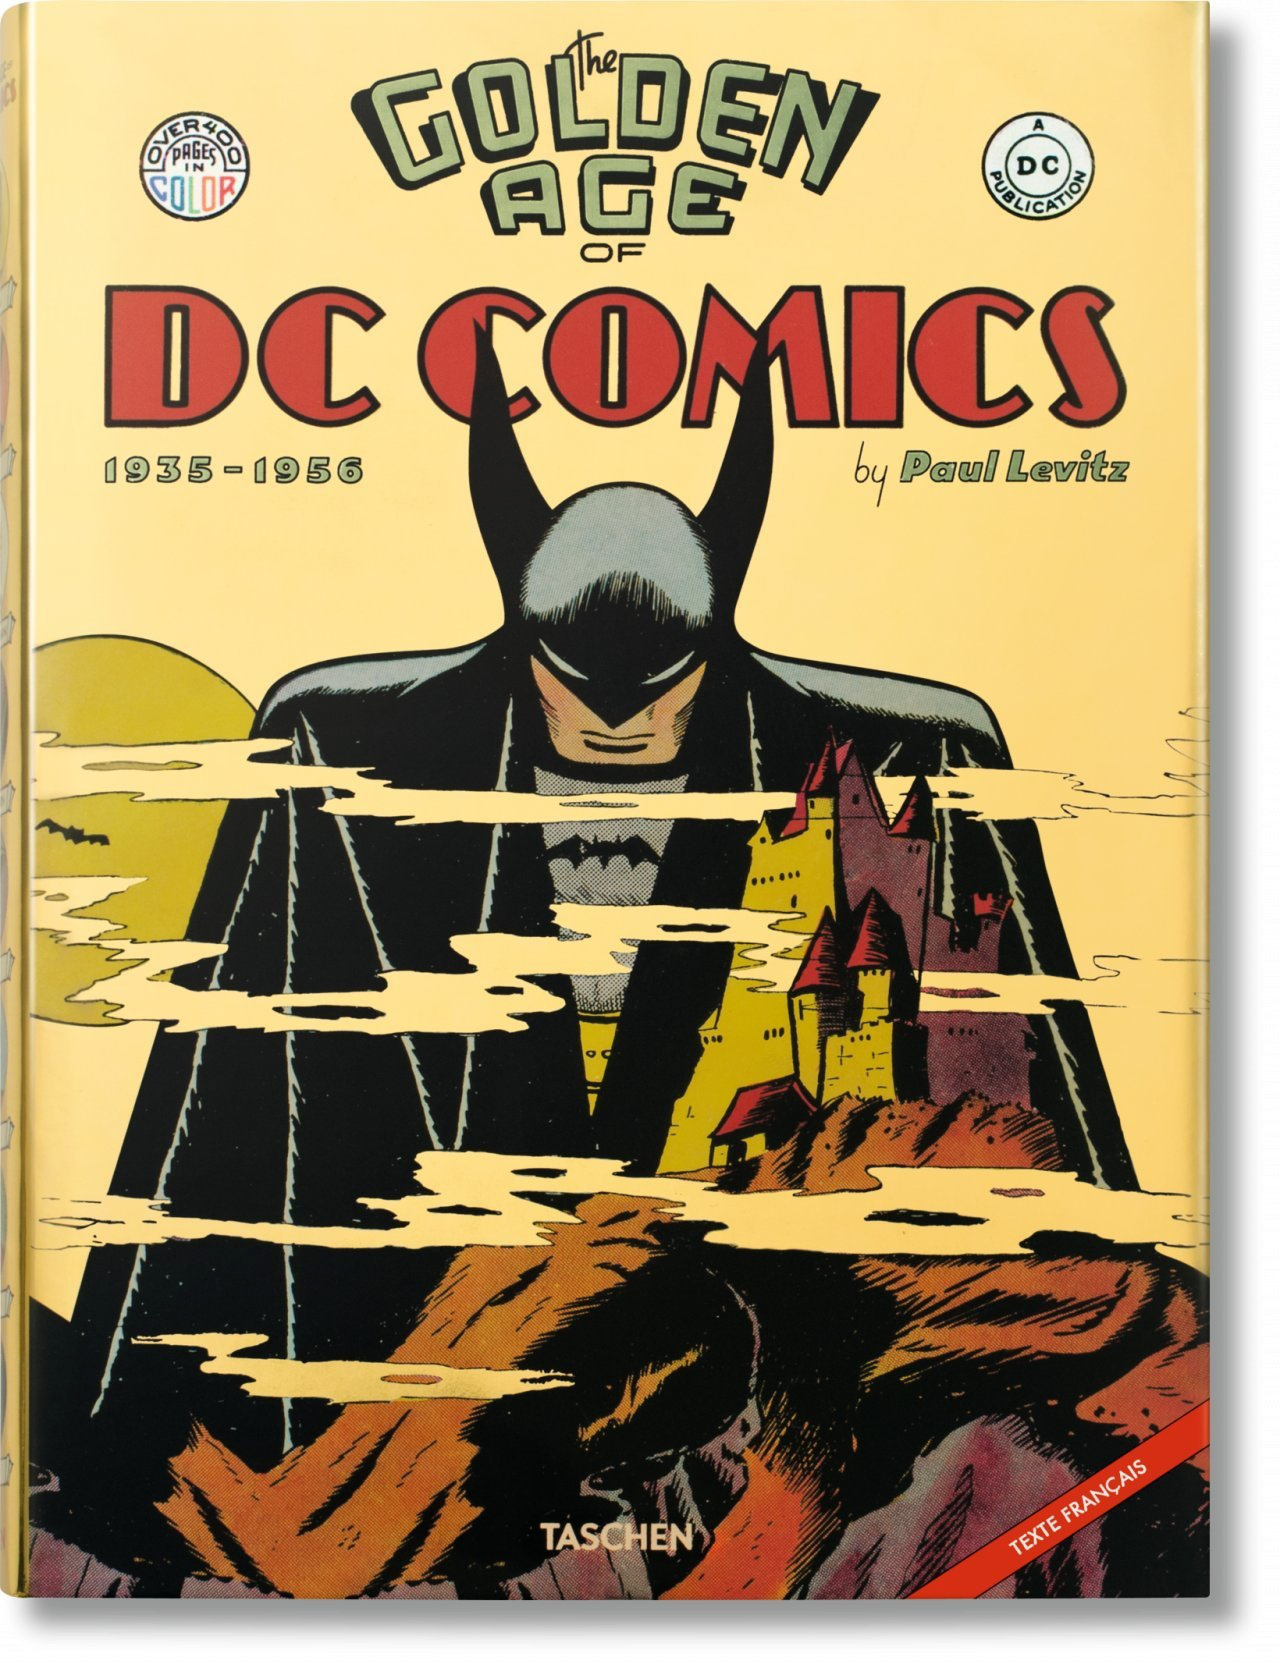 VA-DC COMICS VOL1 GOLDEN AGE